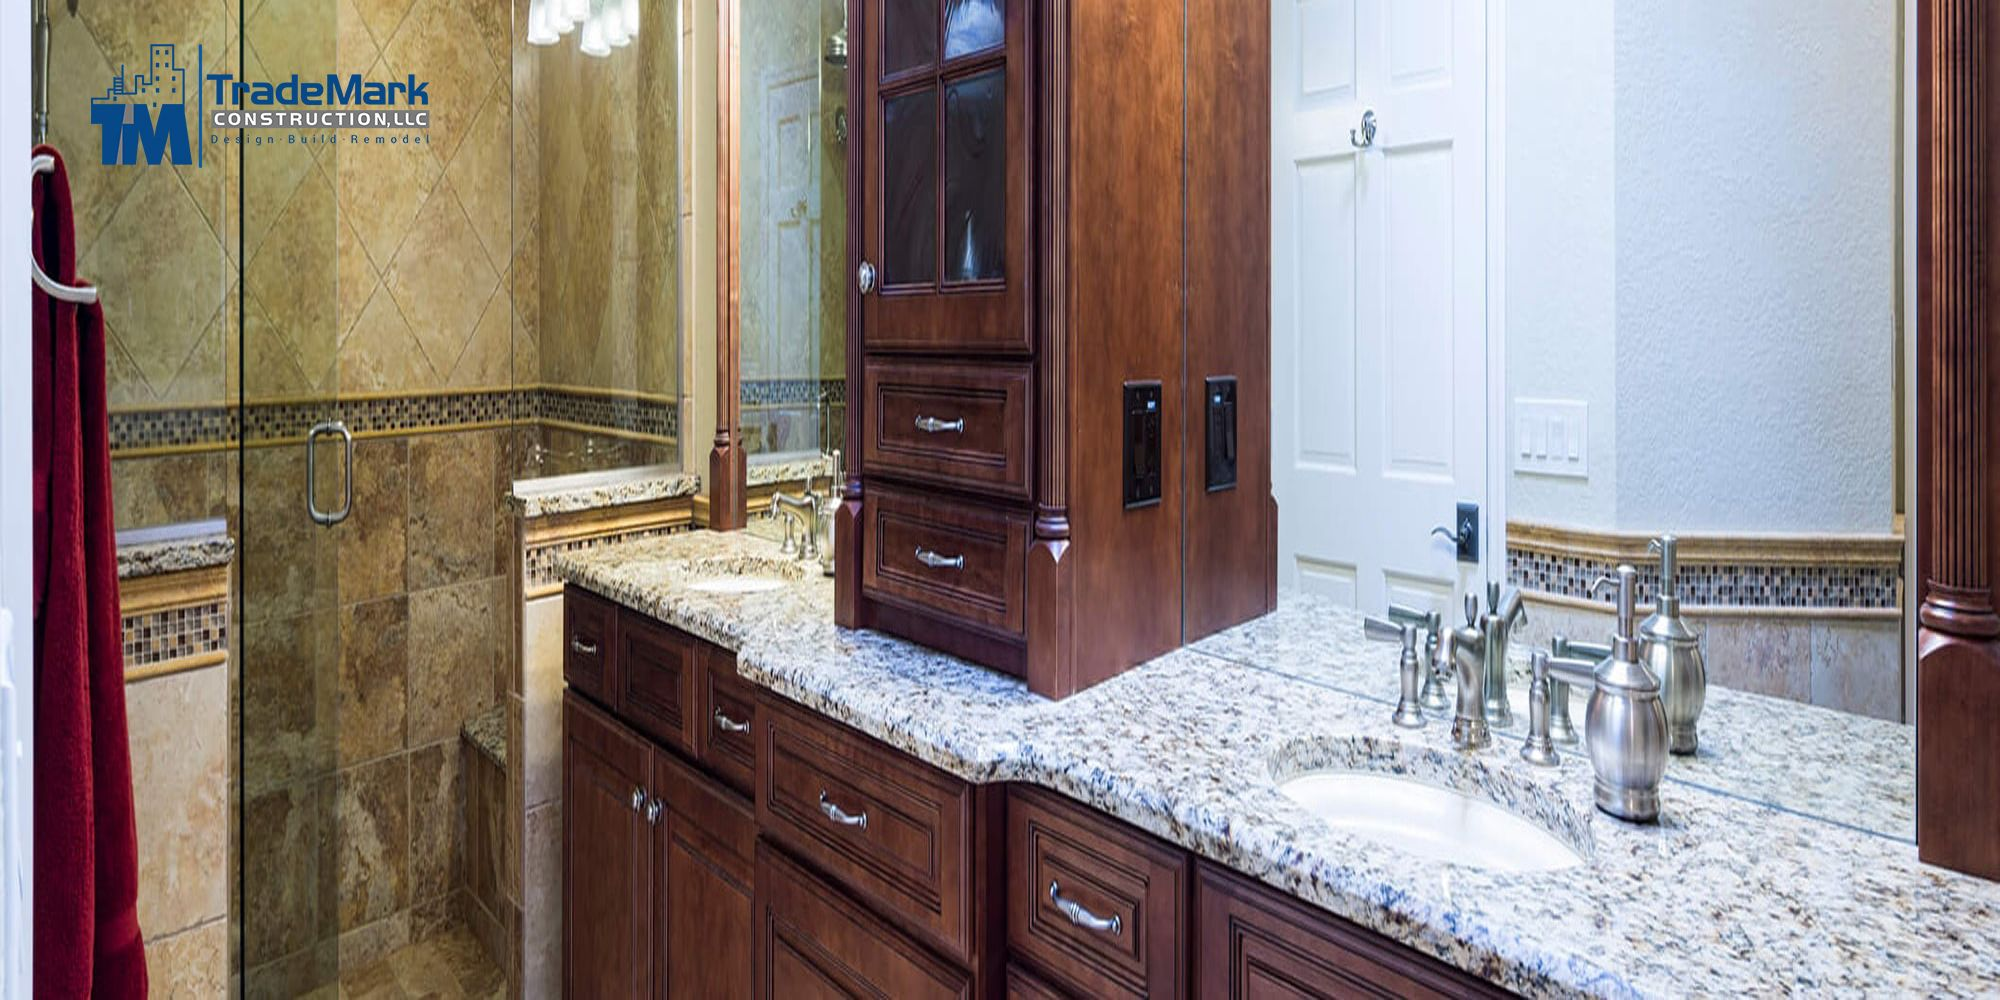 classy hiring a designer for home renovation. Cost Effective Bathroom Renovation Ideas are here for you